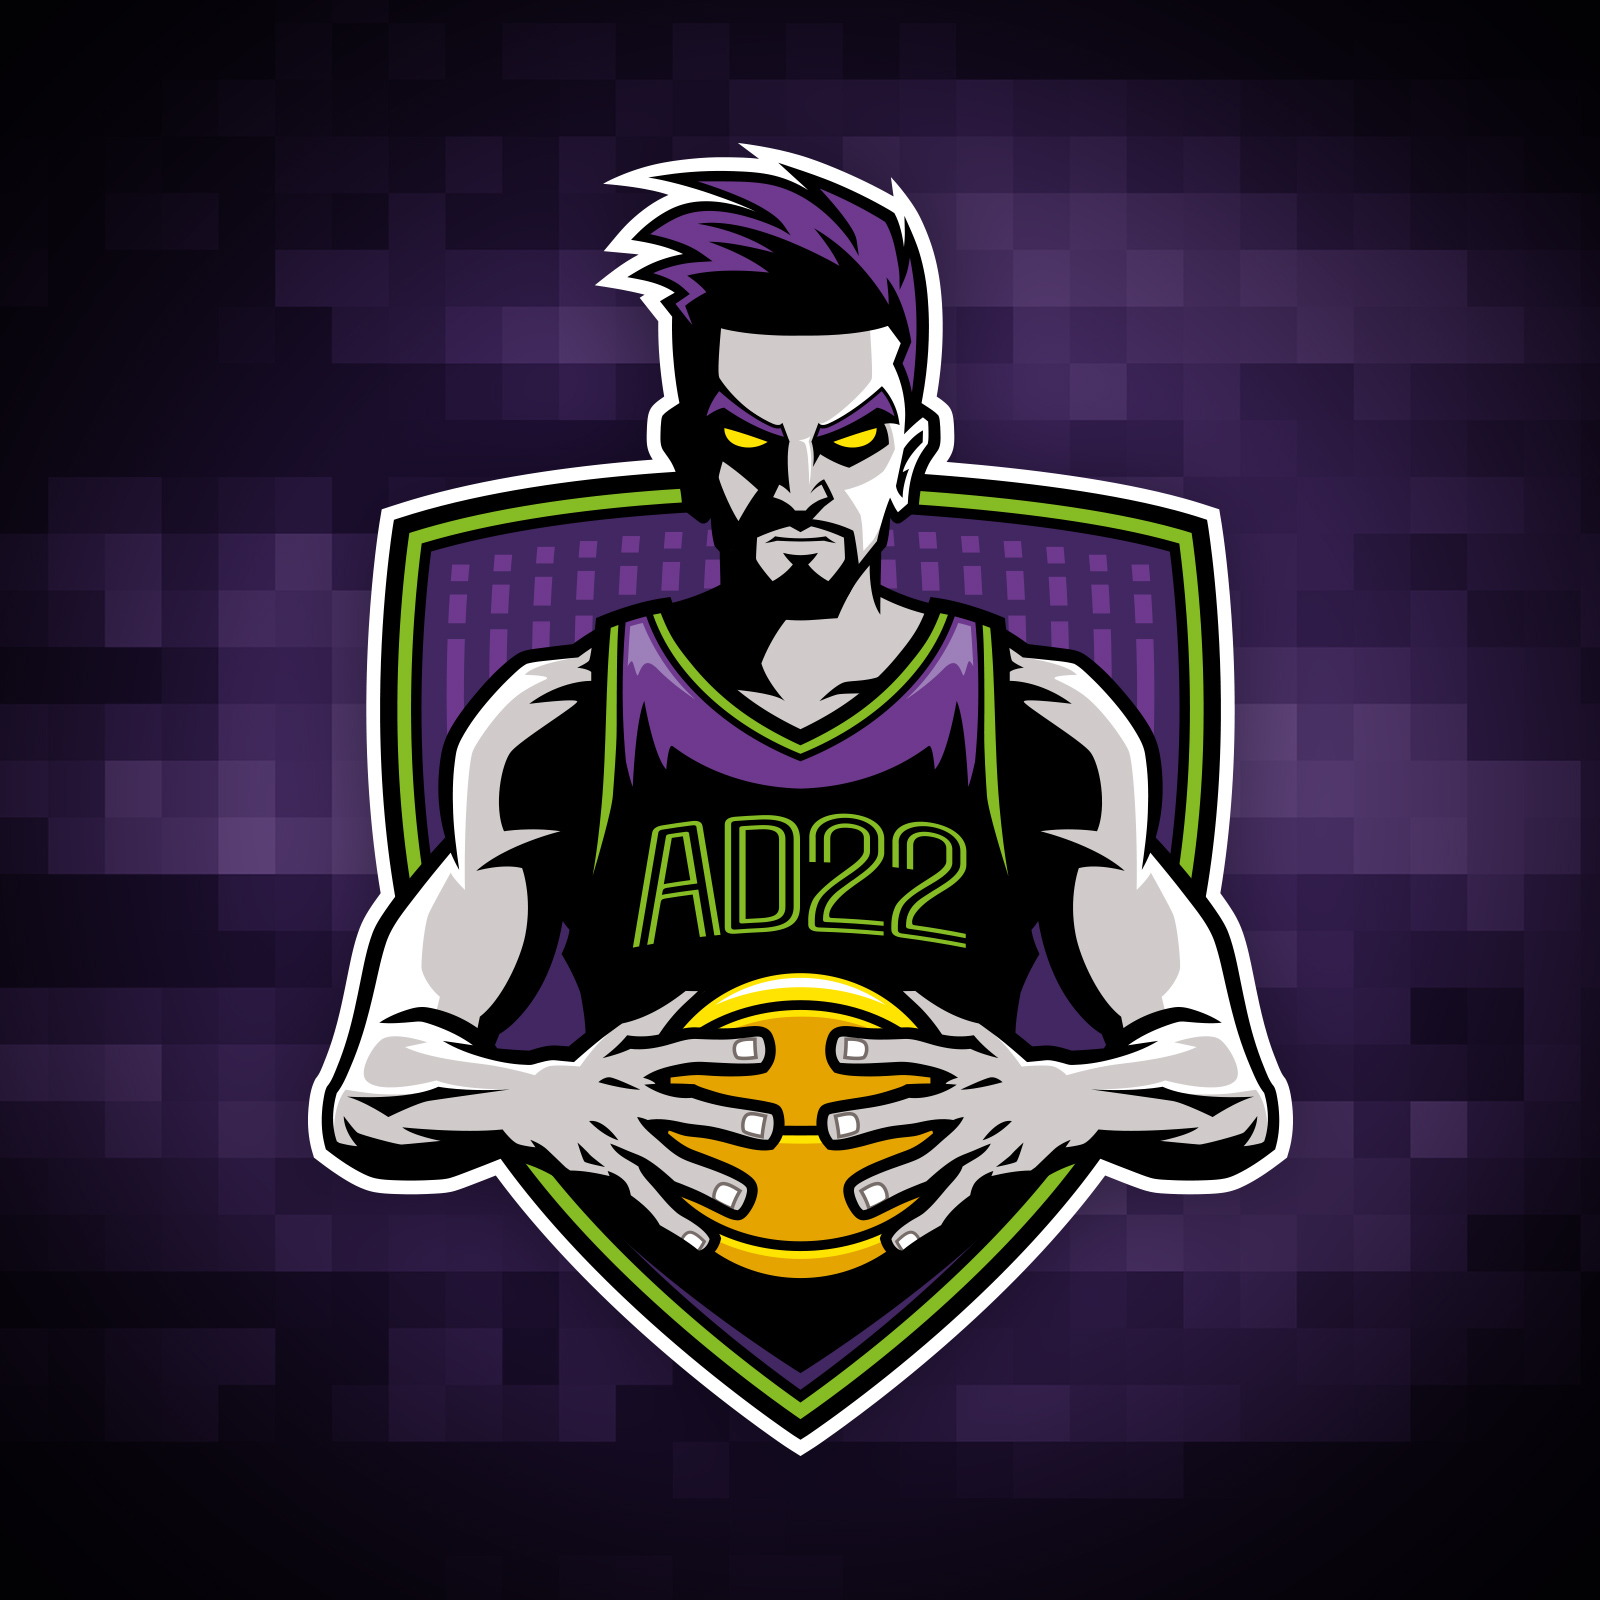 AD22-Twitch_Profile_BALLER